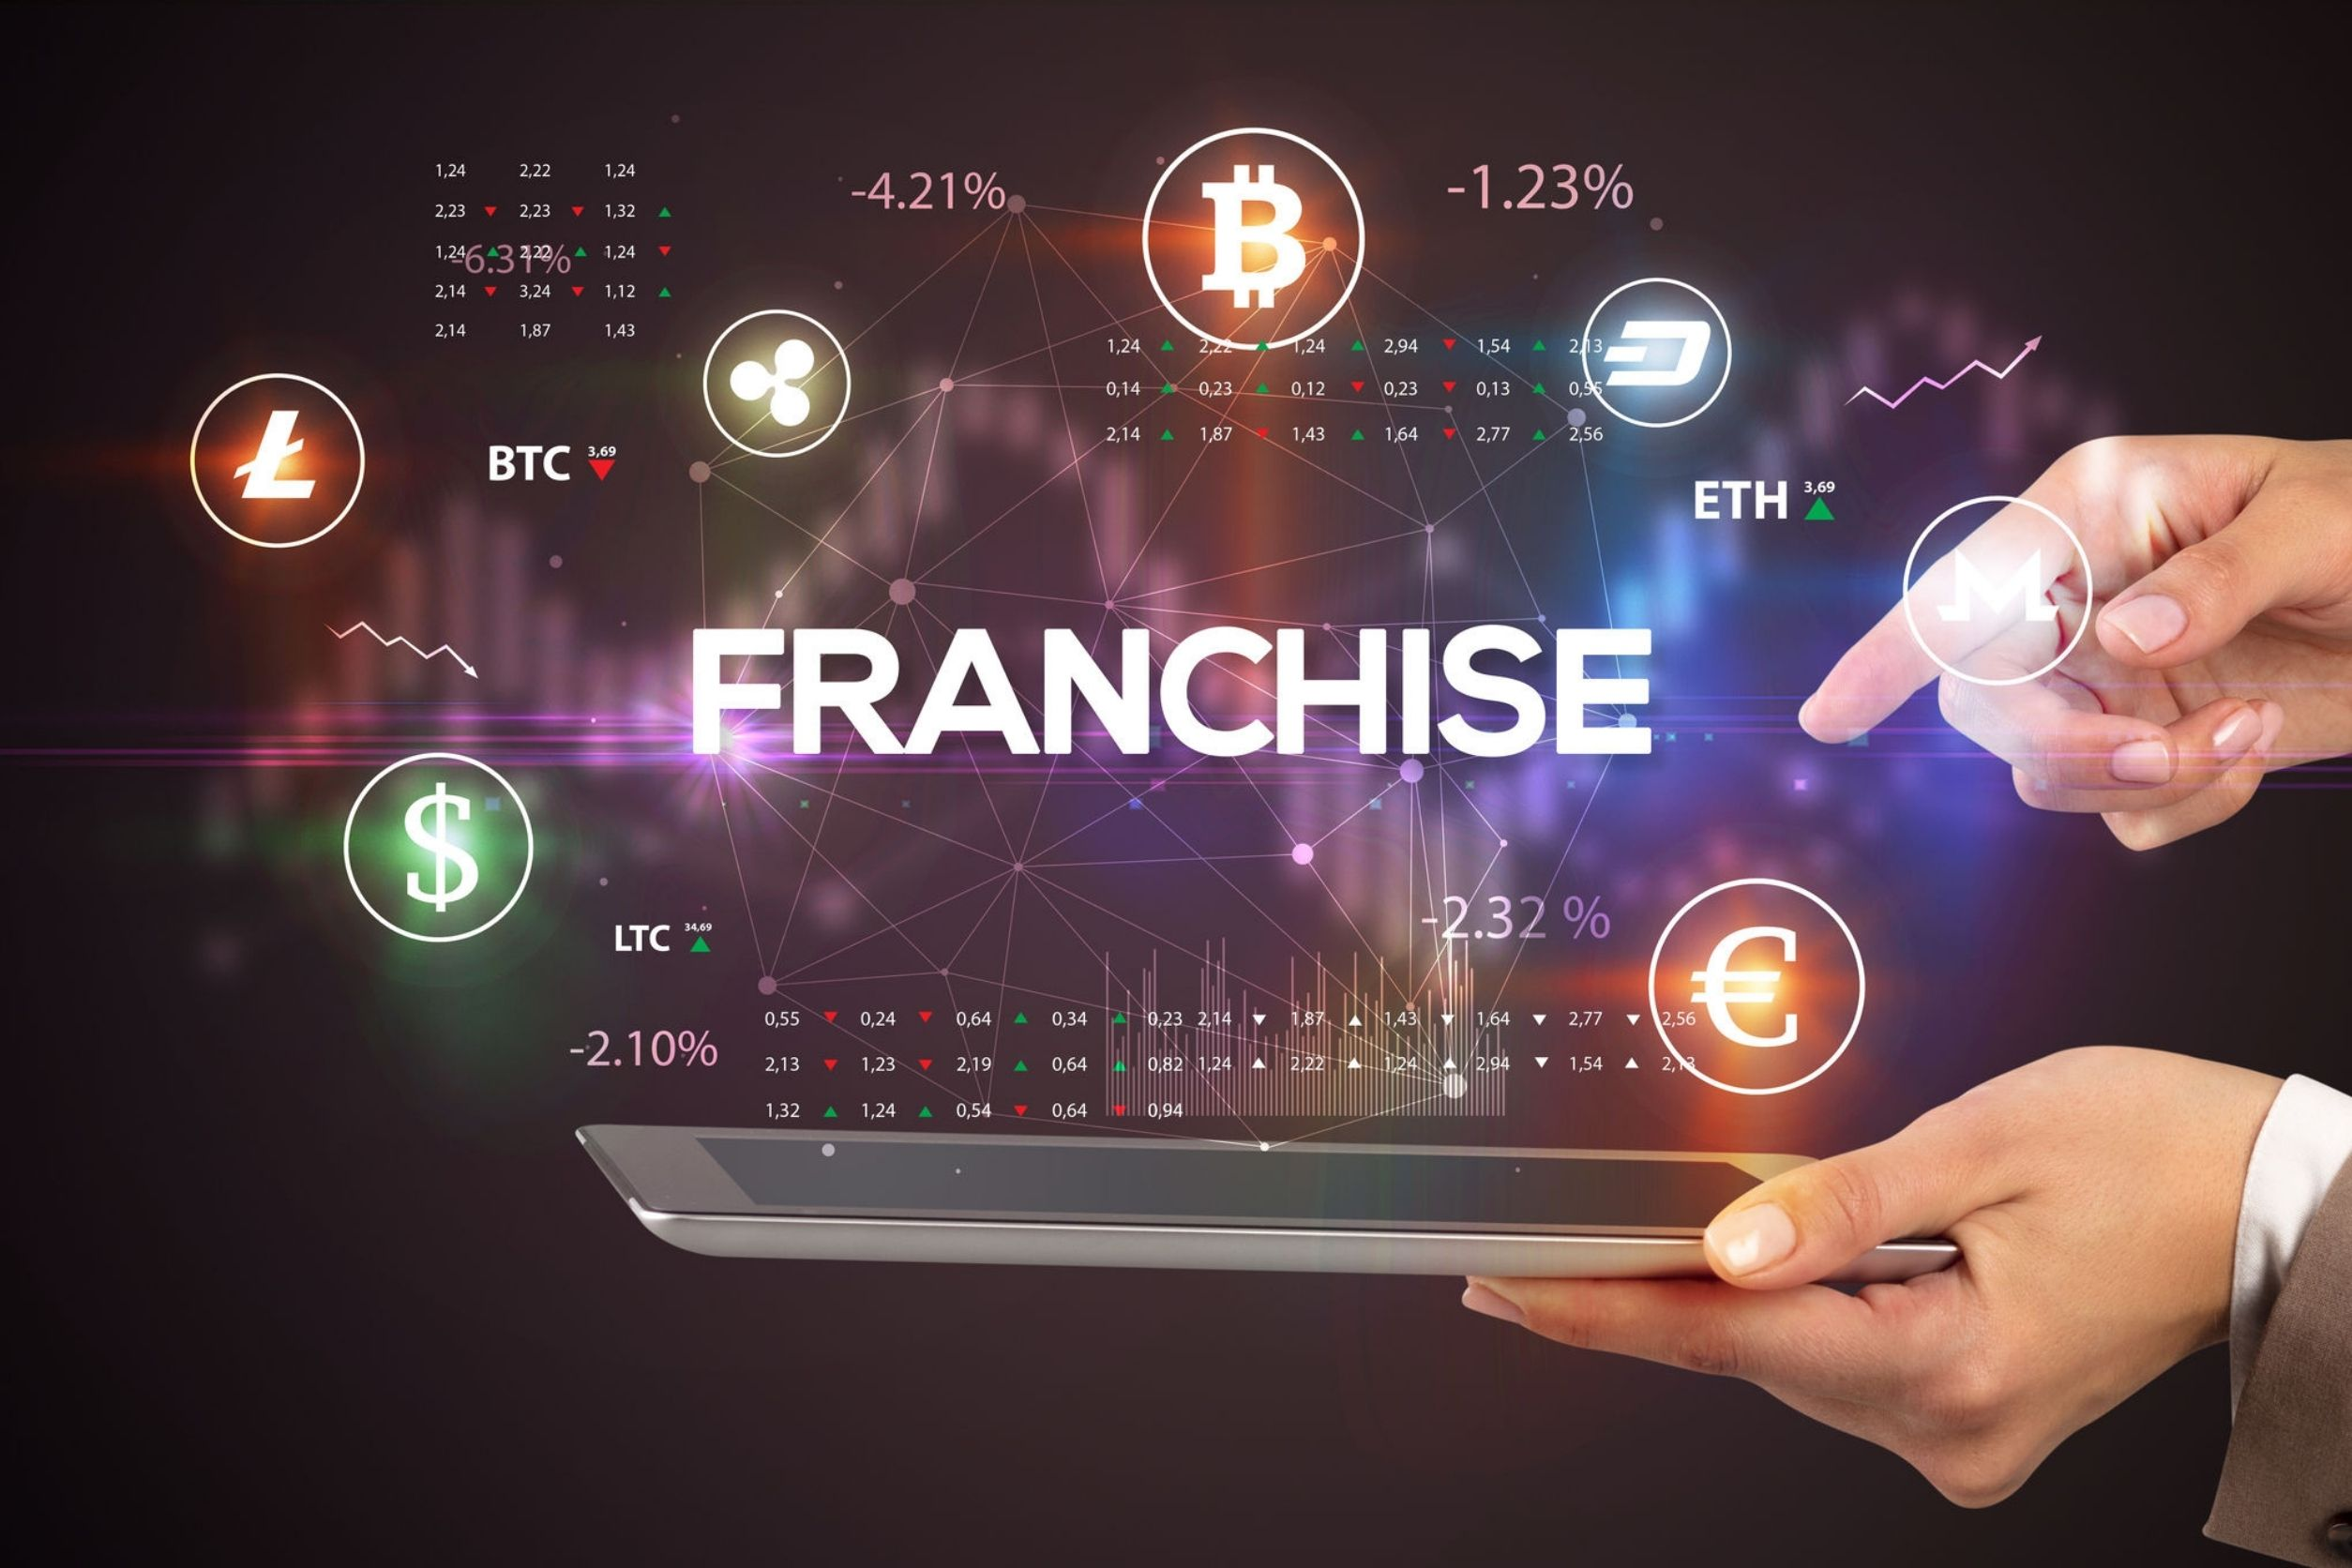 franchise concept: how to manage senior home care franchise